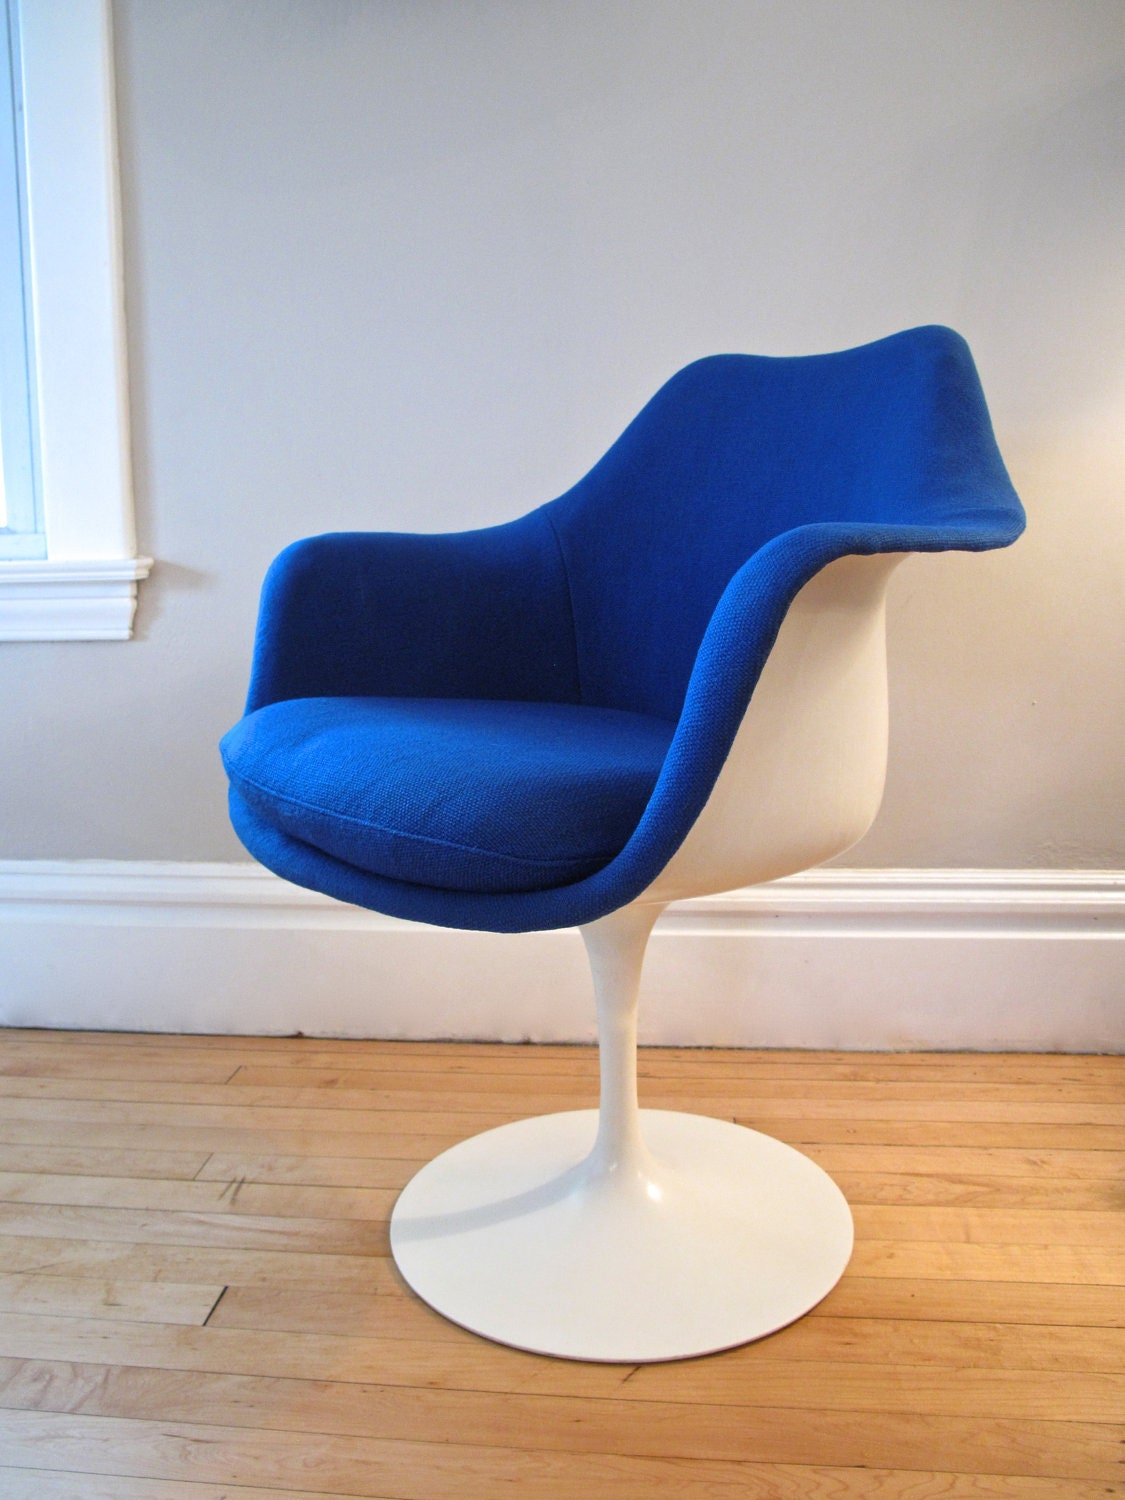 Original 1960 39 S Knoll Saarinen Tulip Chair By Elefantdesign